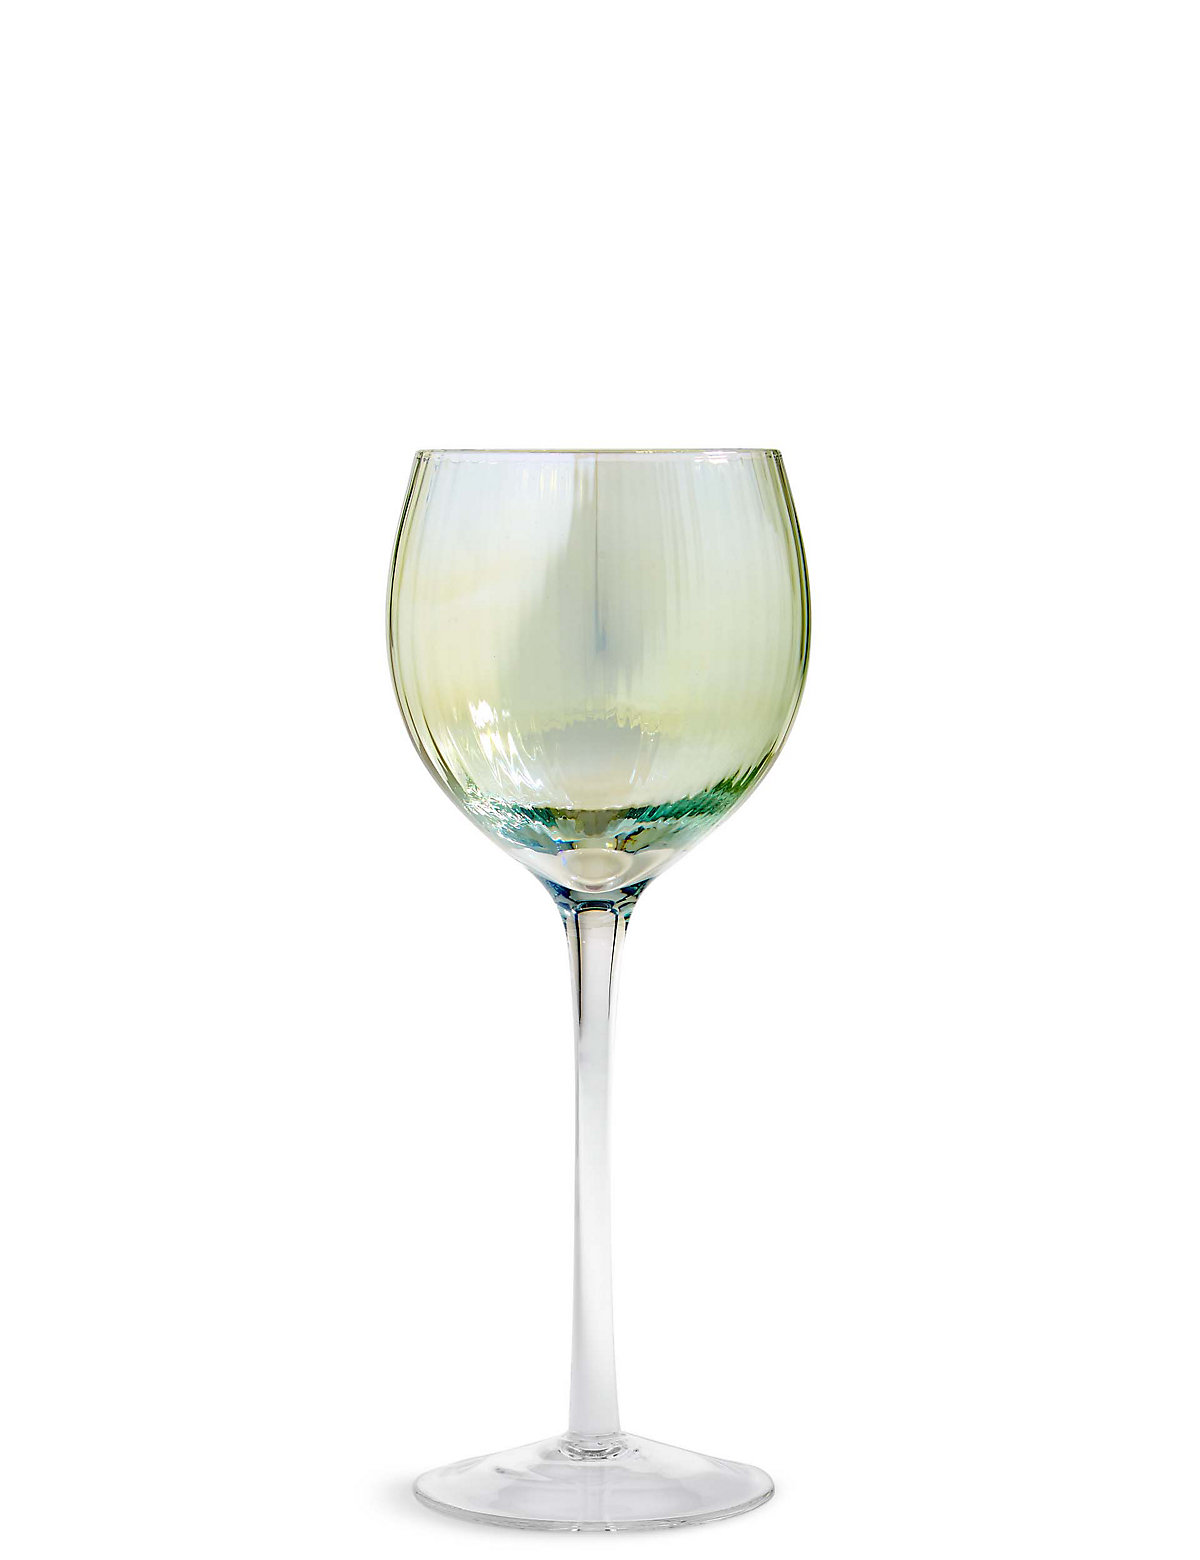 Marks spencer catalogue glassware from marks spencer for Thin stem wine glasses